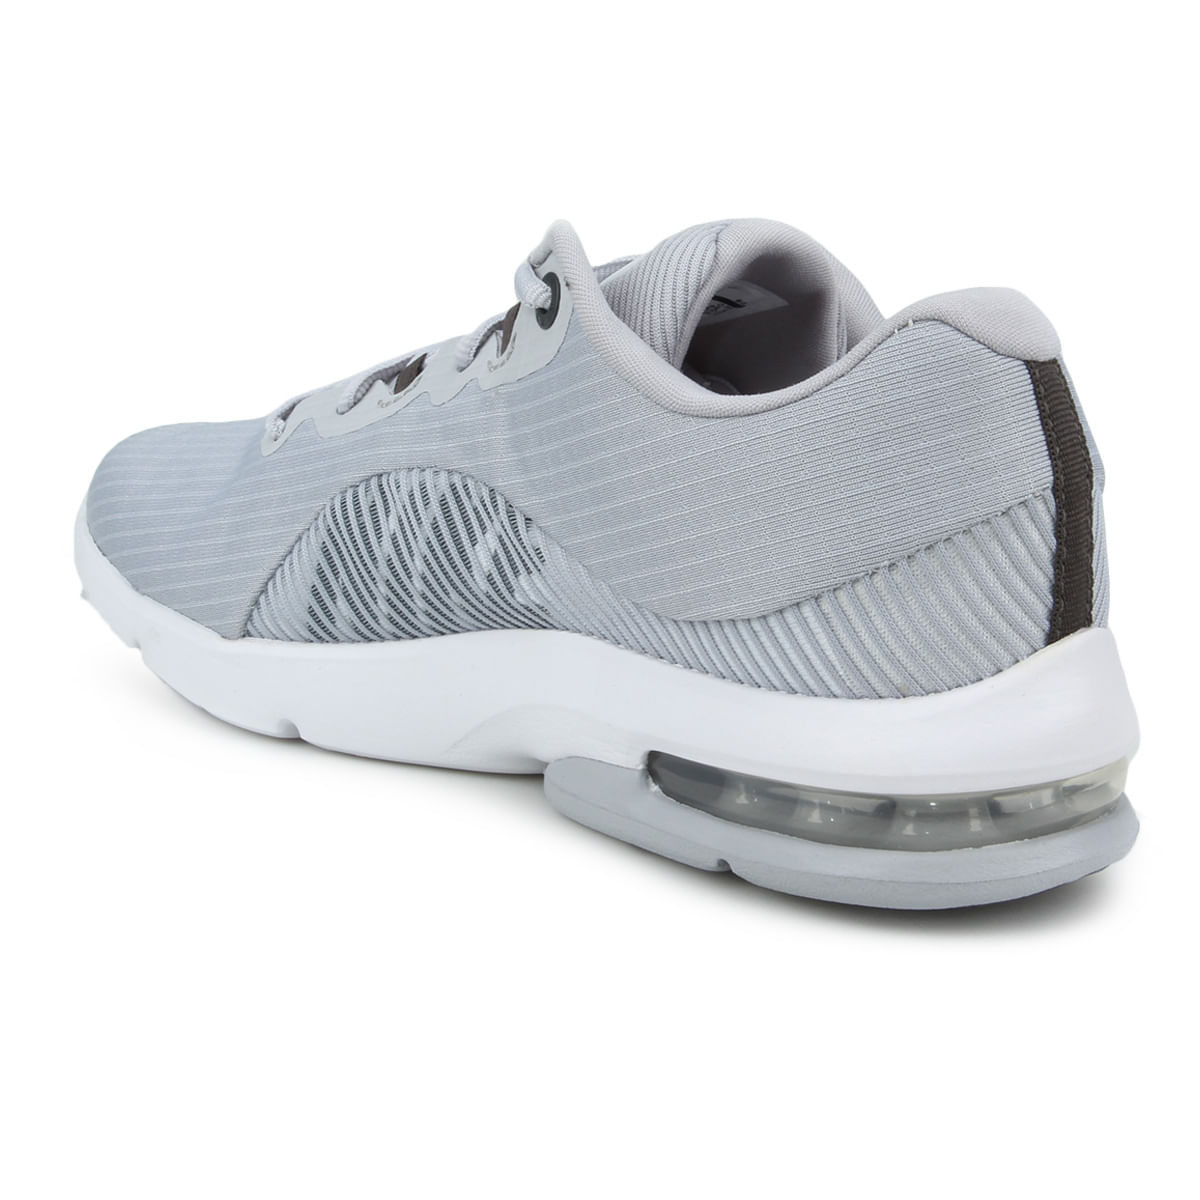 buy popular da207 88c37 Tênis Nike Air Max Advantage 2 Masculino - Comprar no ShopFácil ...